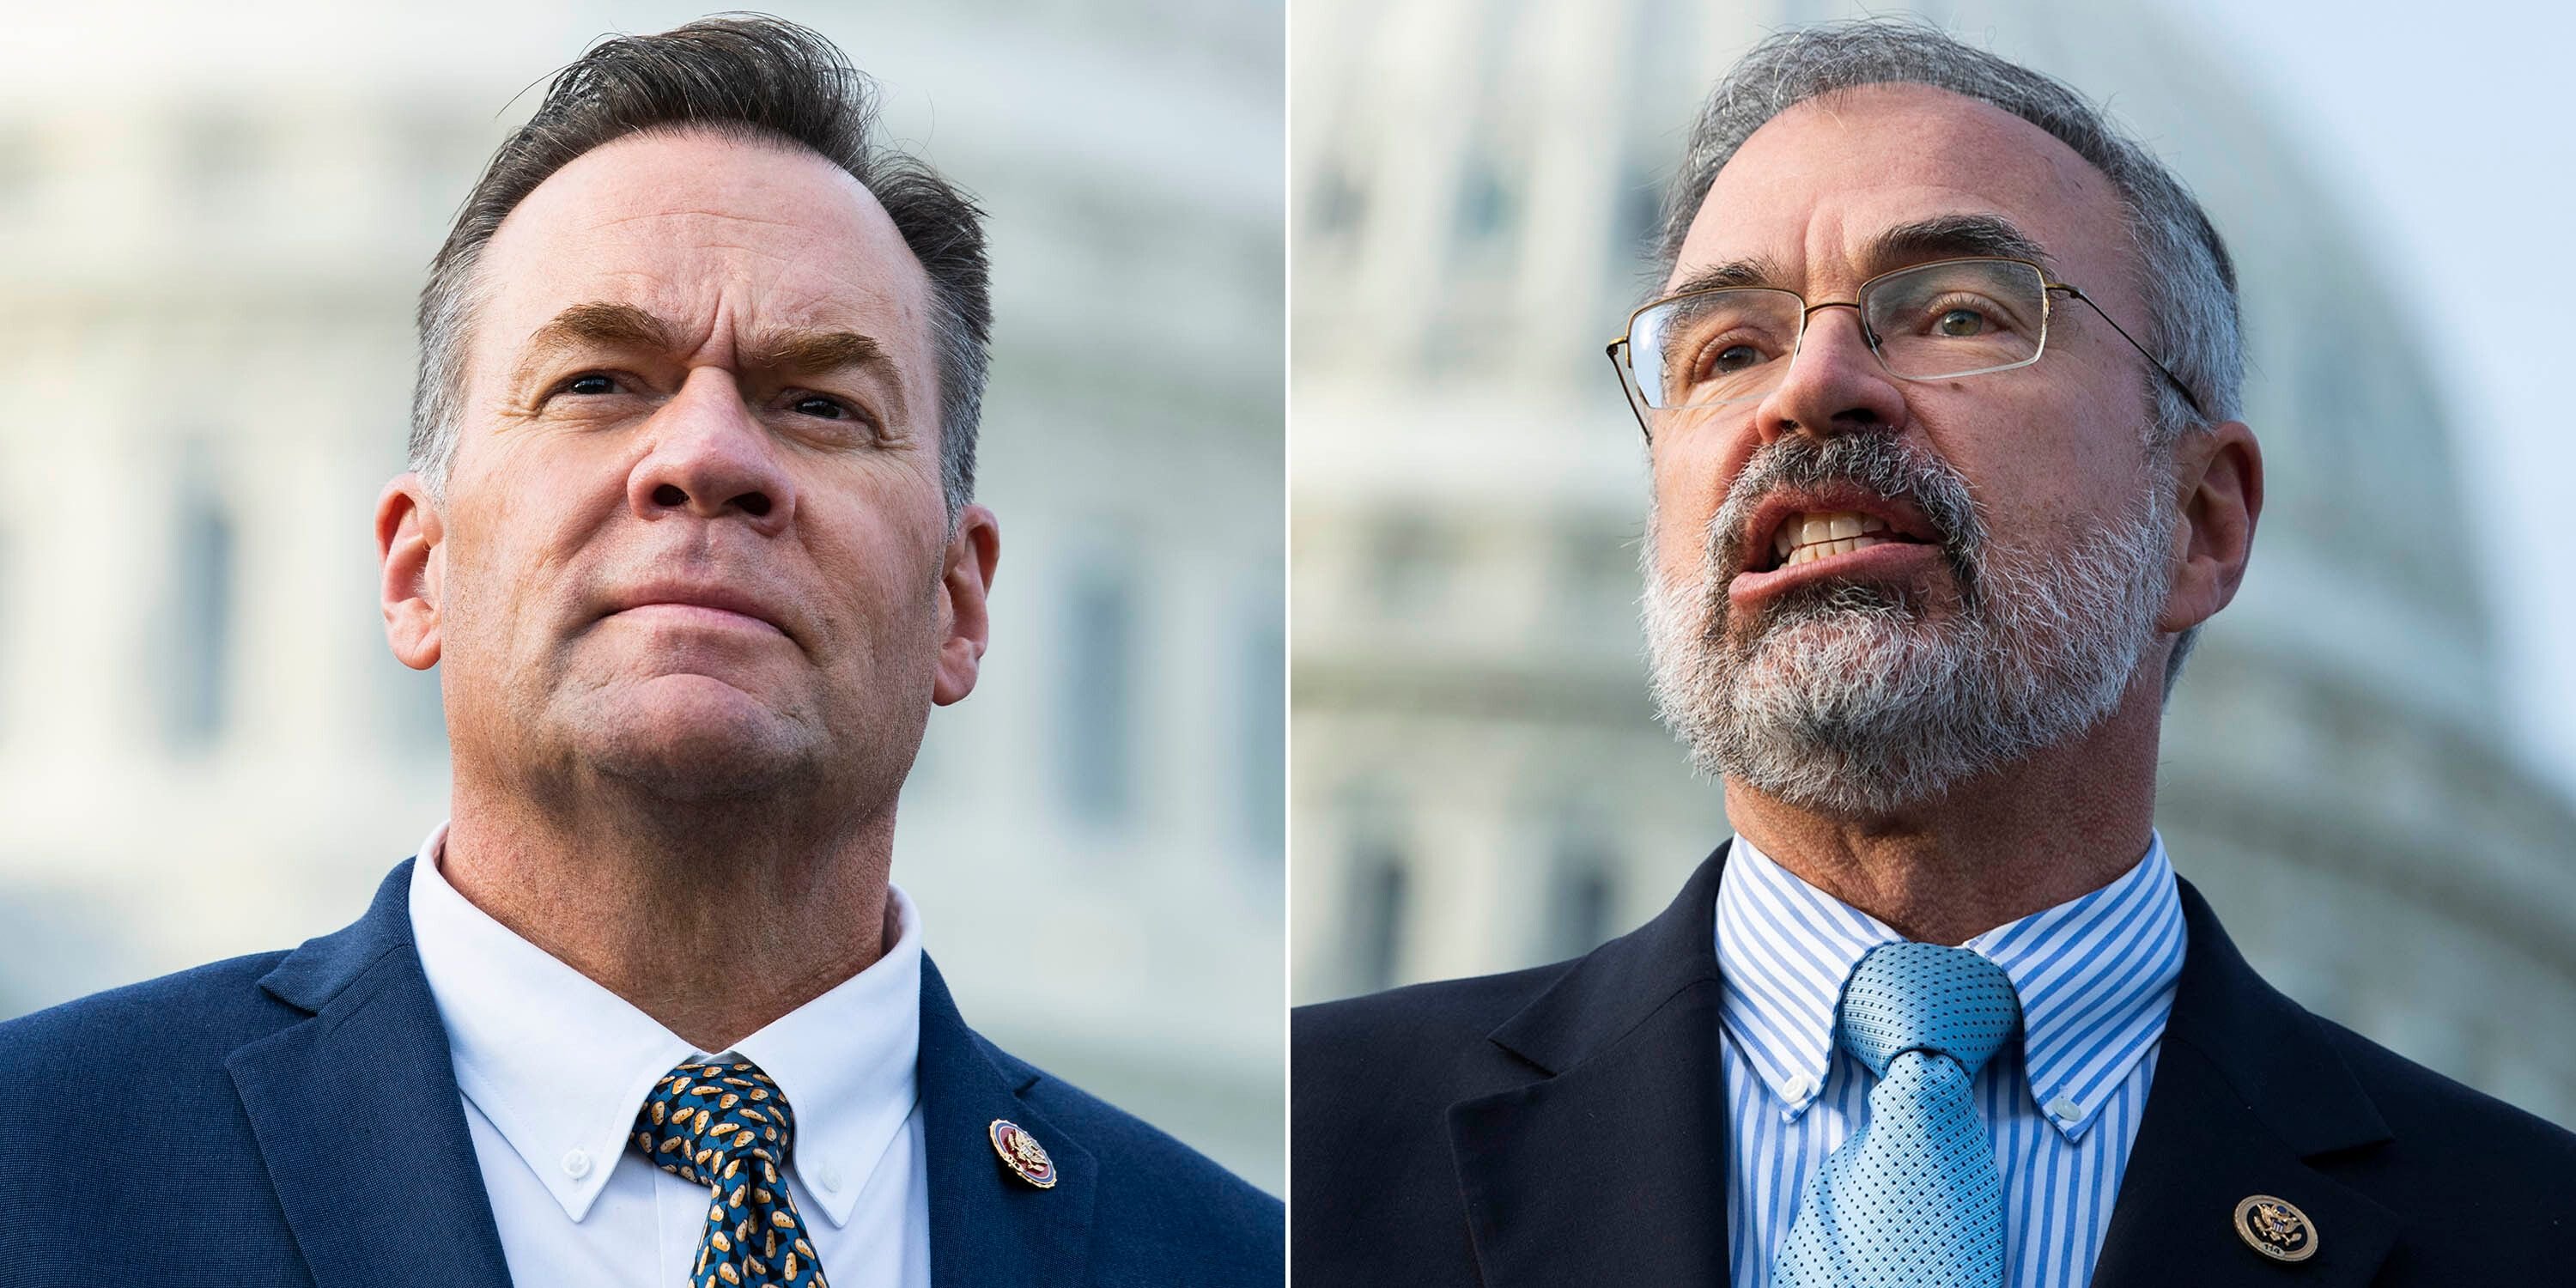 Rep. Russ Fulcher (R-Idaho), left, and Rep. Andy Harris (R-Md.) have come under scrutiny for incidents at the metal detectors